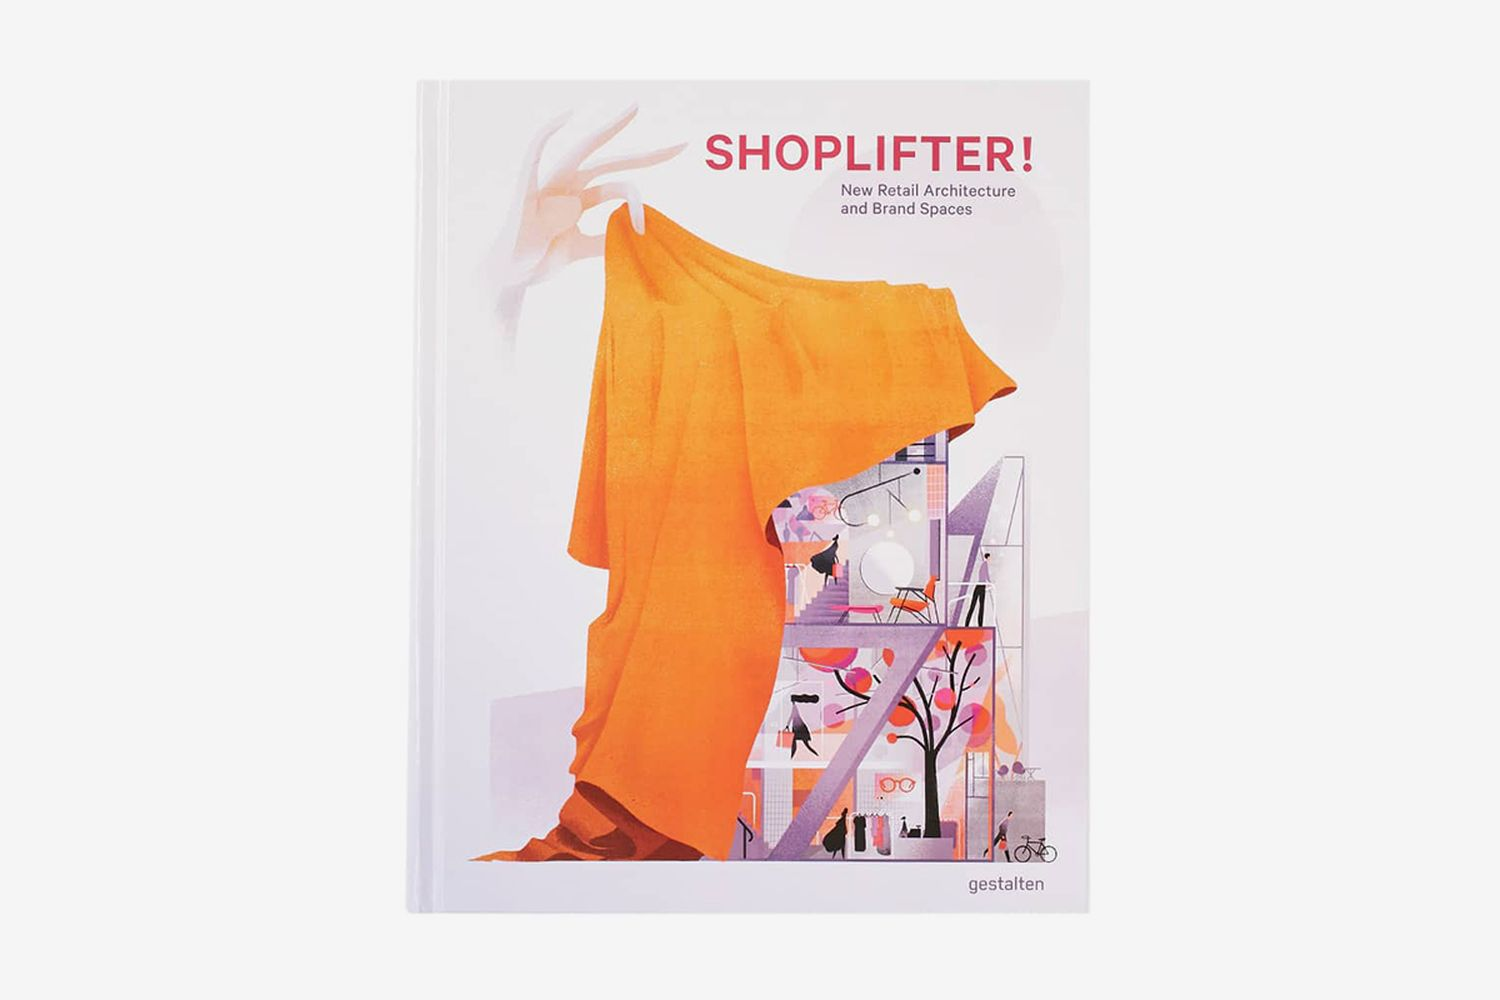 Shoplifters: New Retail Architecture & Brand Spaces